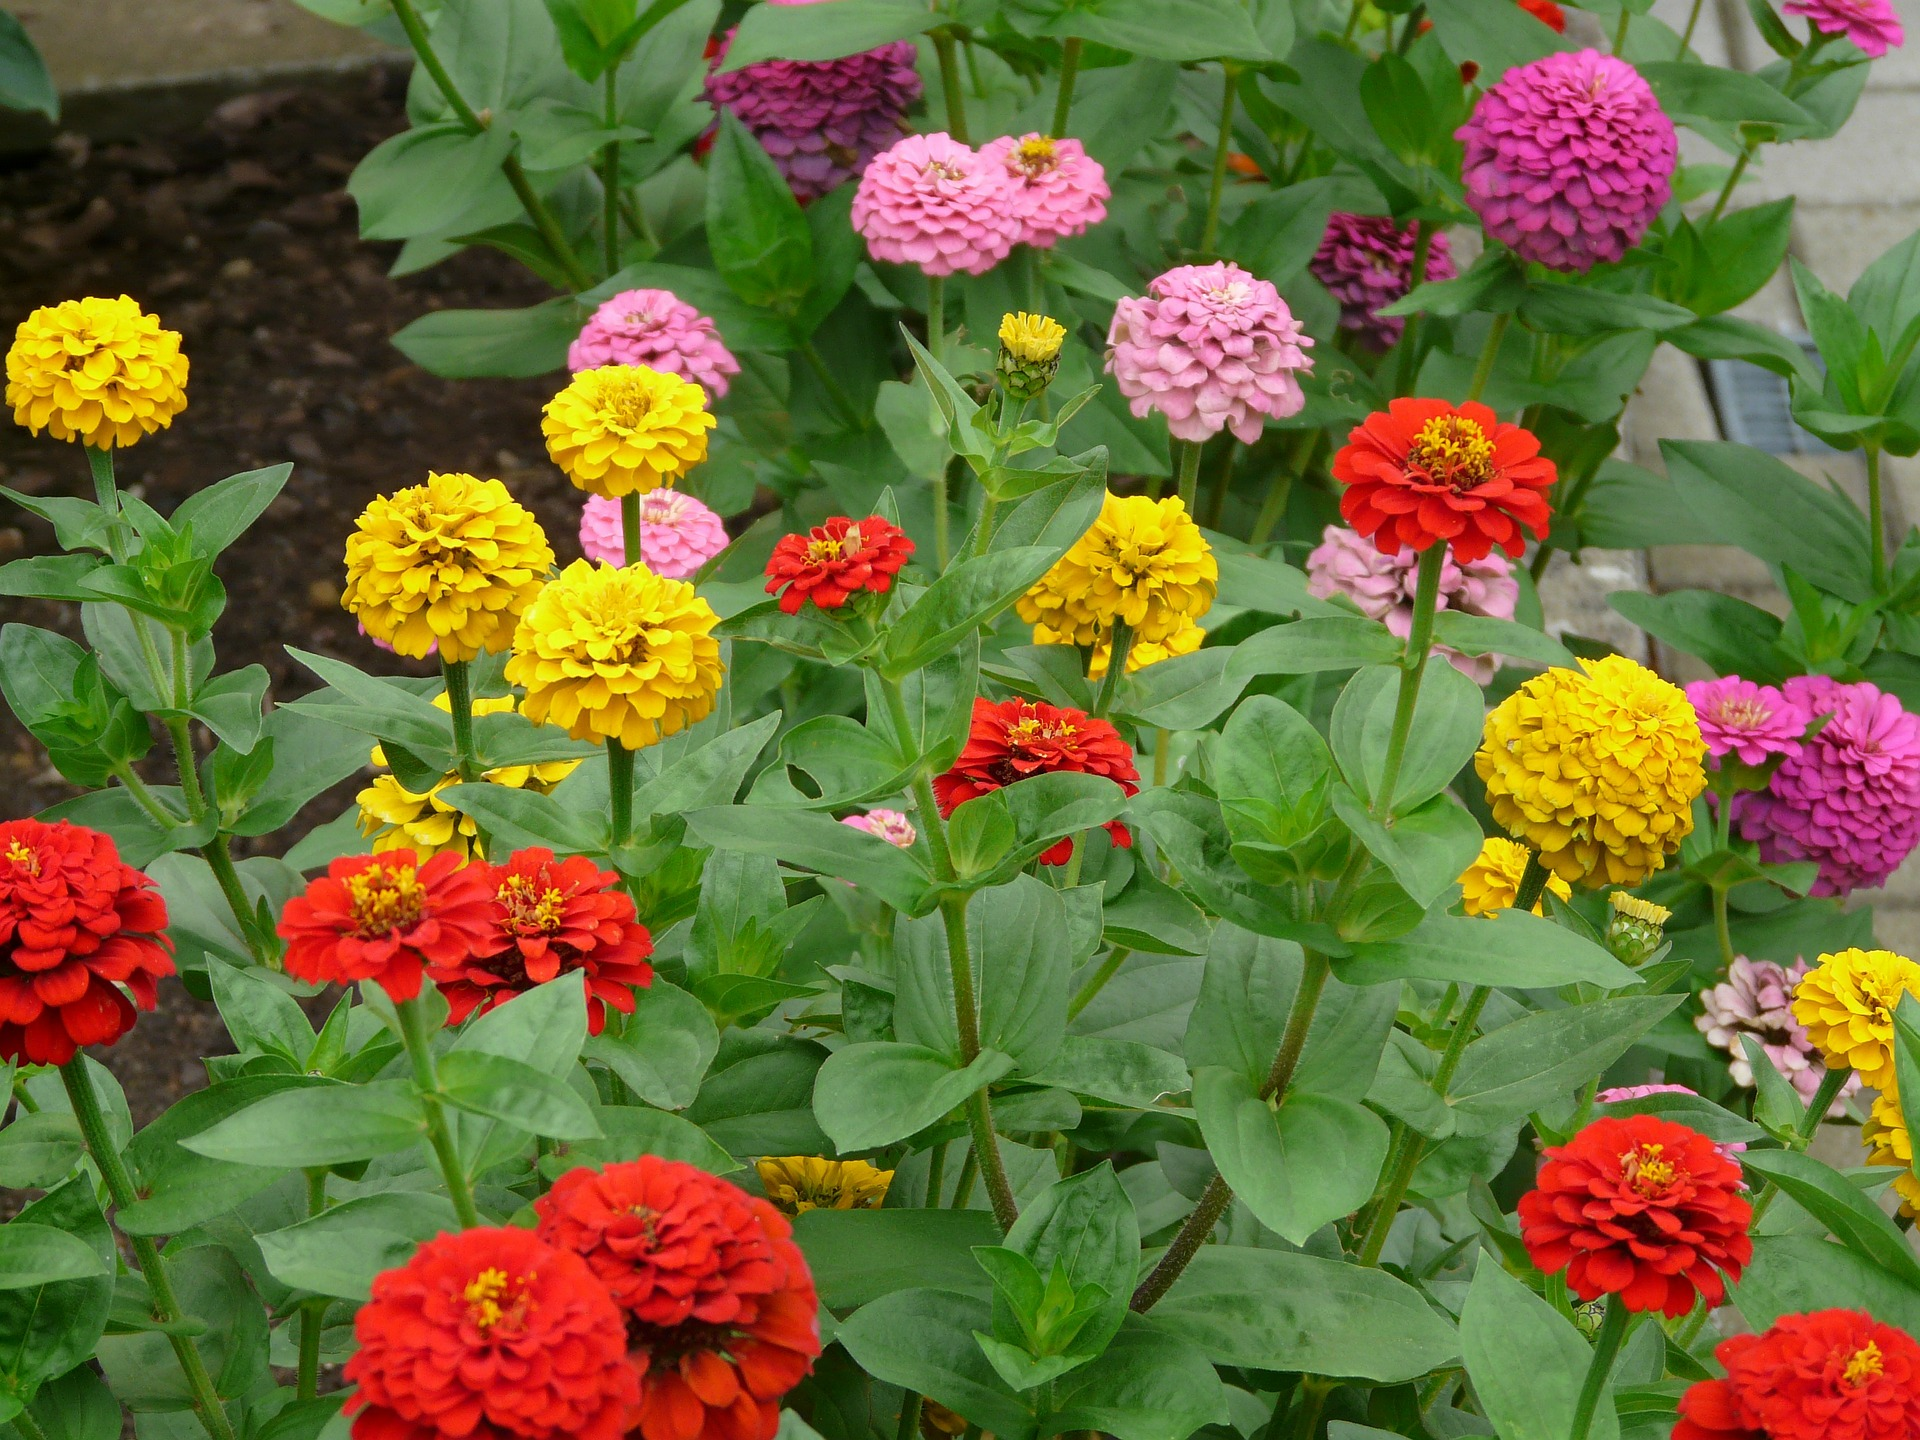 Morning glory flower coloring pages - Zinnias